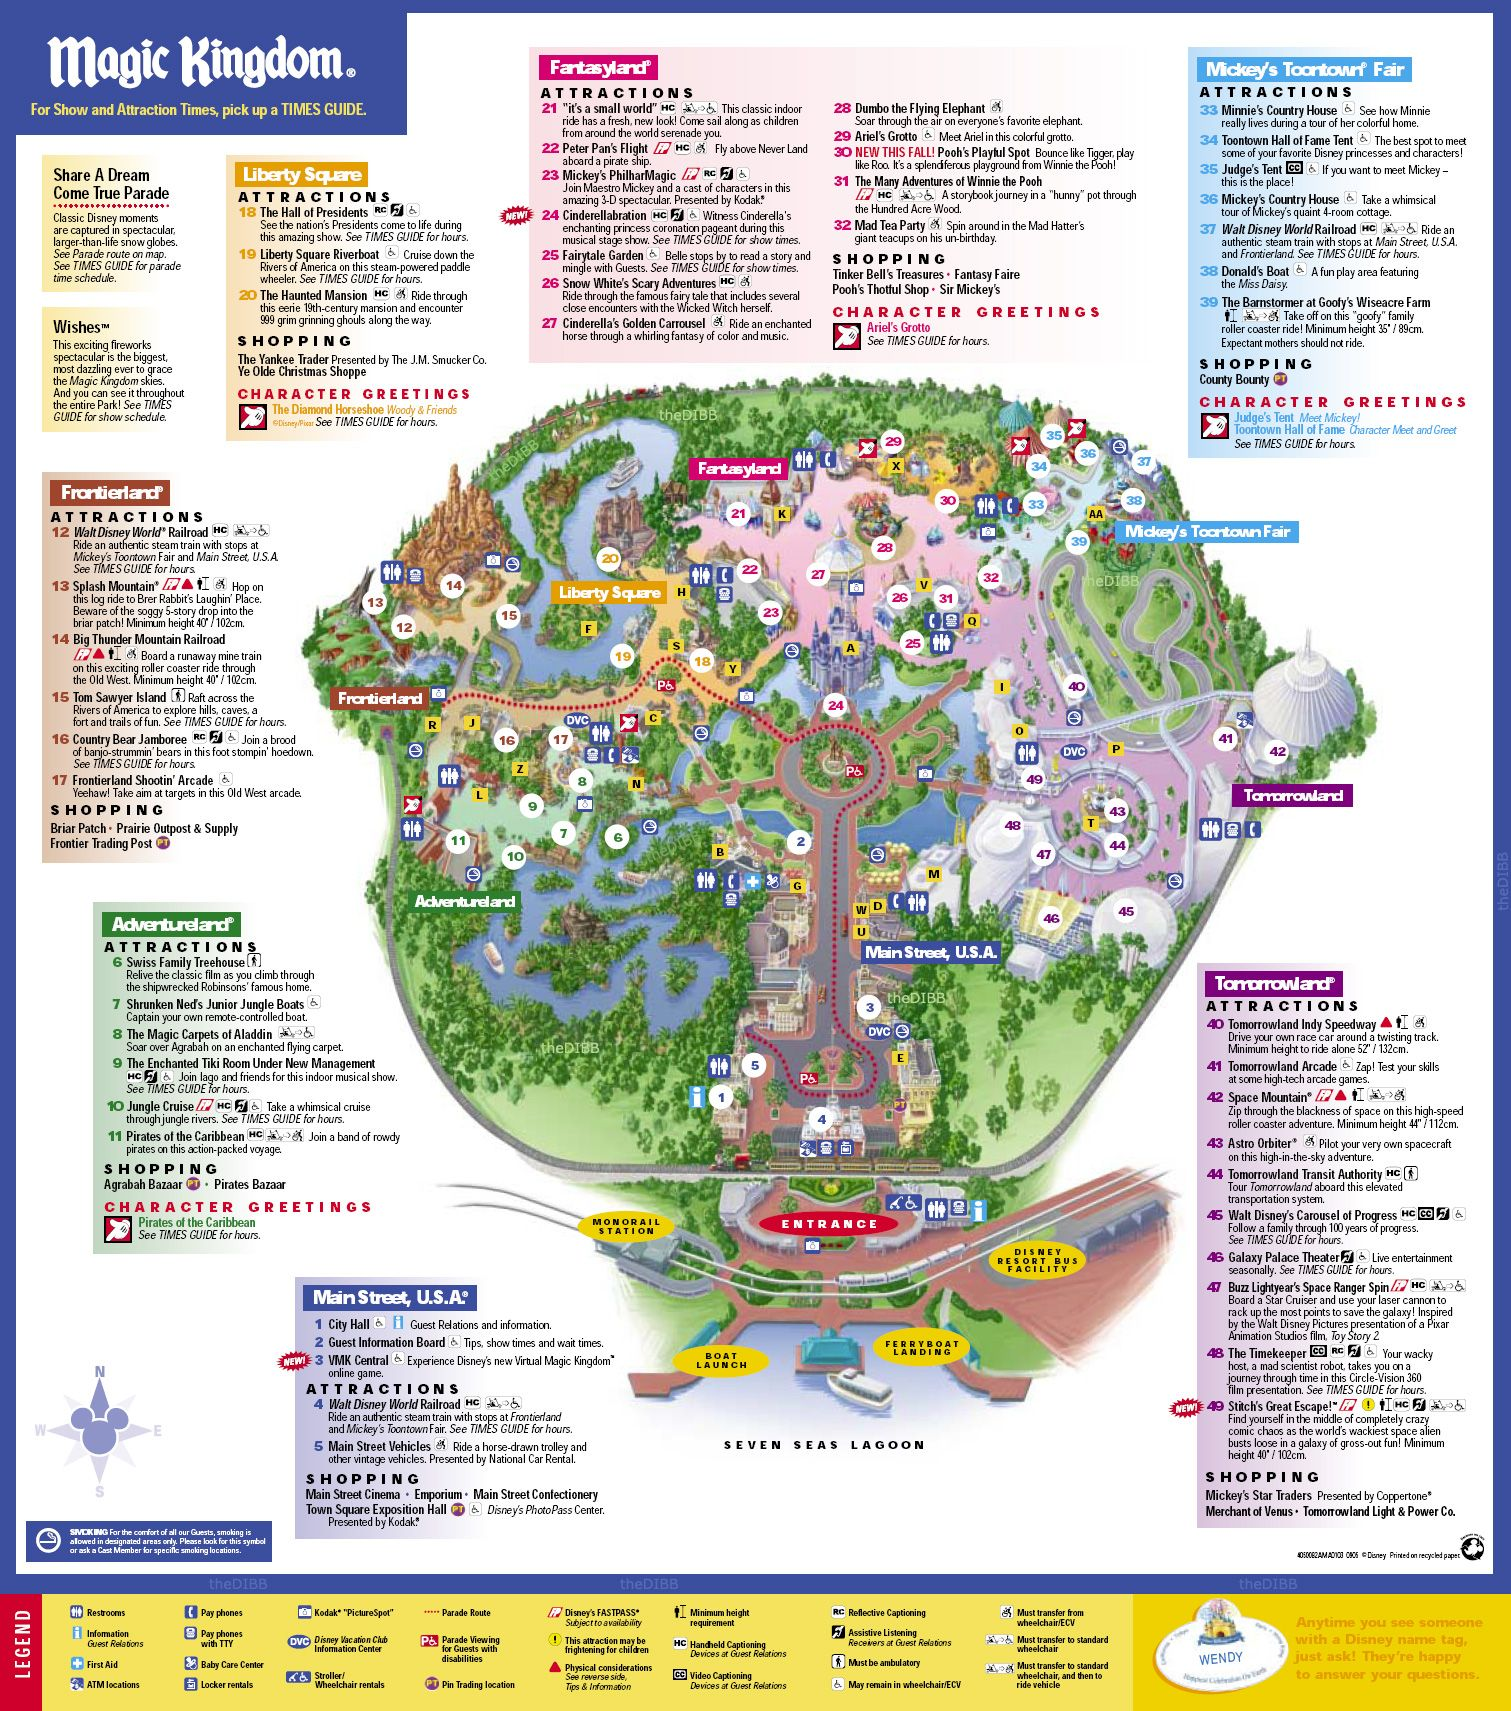 Genius image intended for magic kingdom printable map